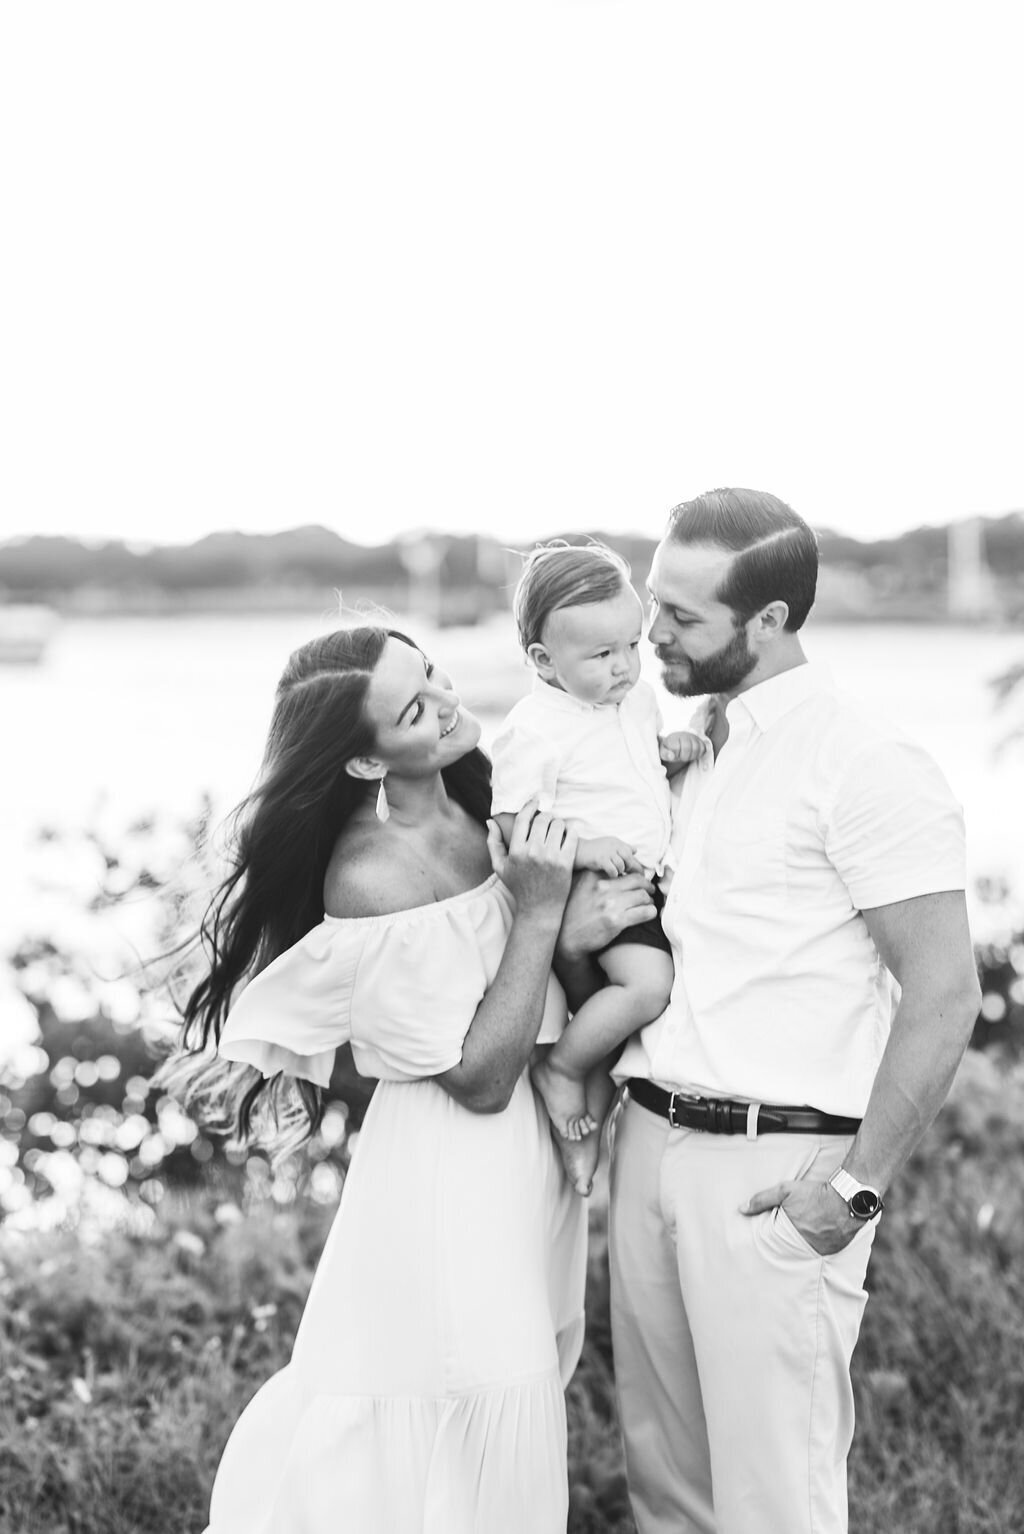 Tampa Family Photographer 108